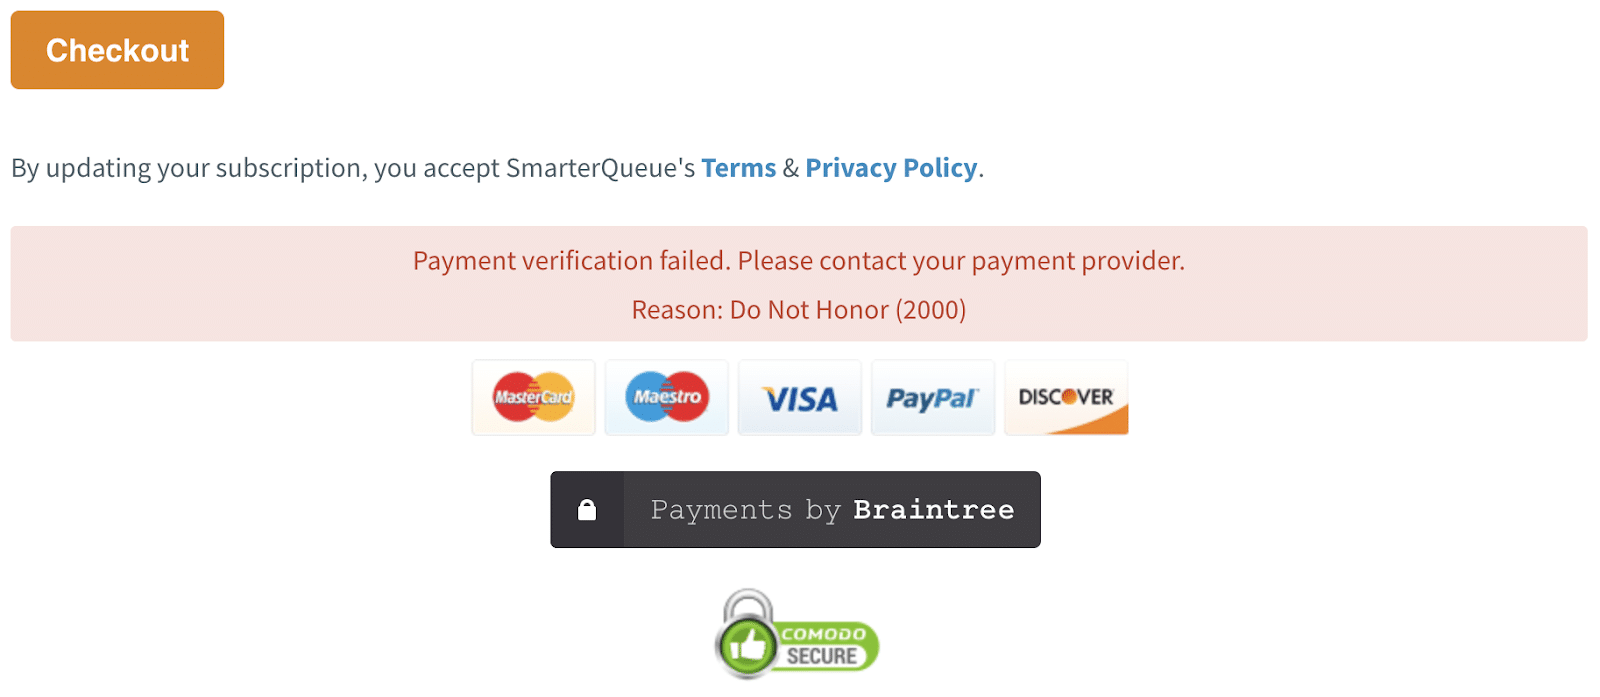 Example of a online credit card purchase being declined (Source: SmarterQueue.com)